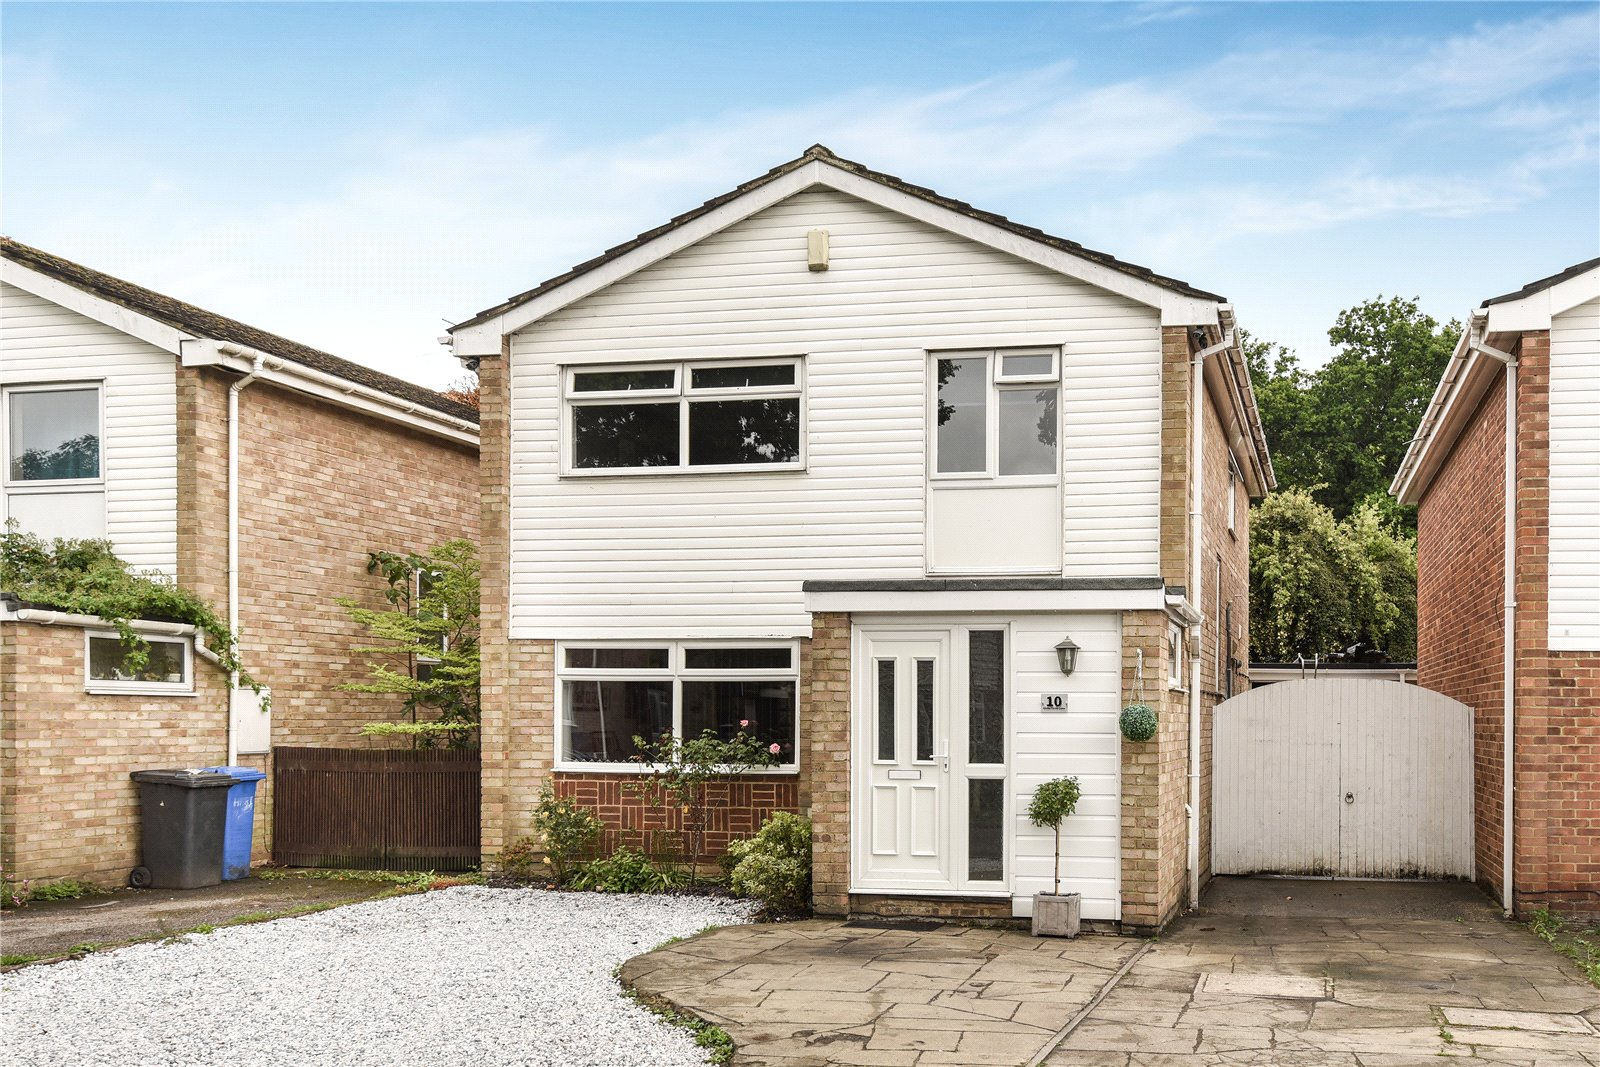 4 Bedrooms Detached House for sale in Globe Farm Lane, Blackwater, Camberley, GU17